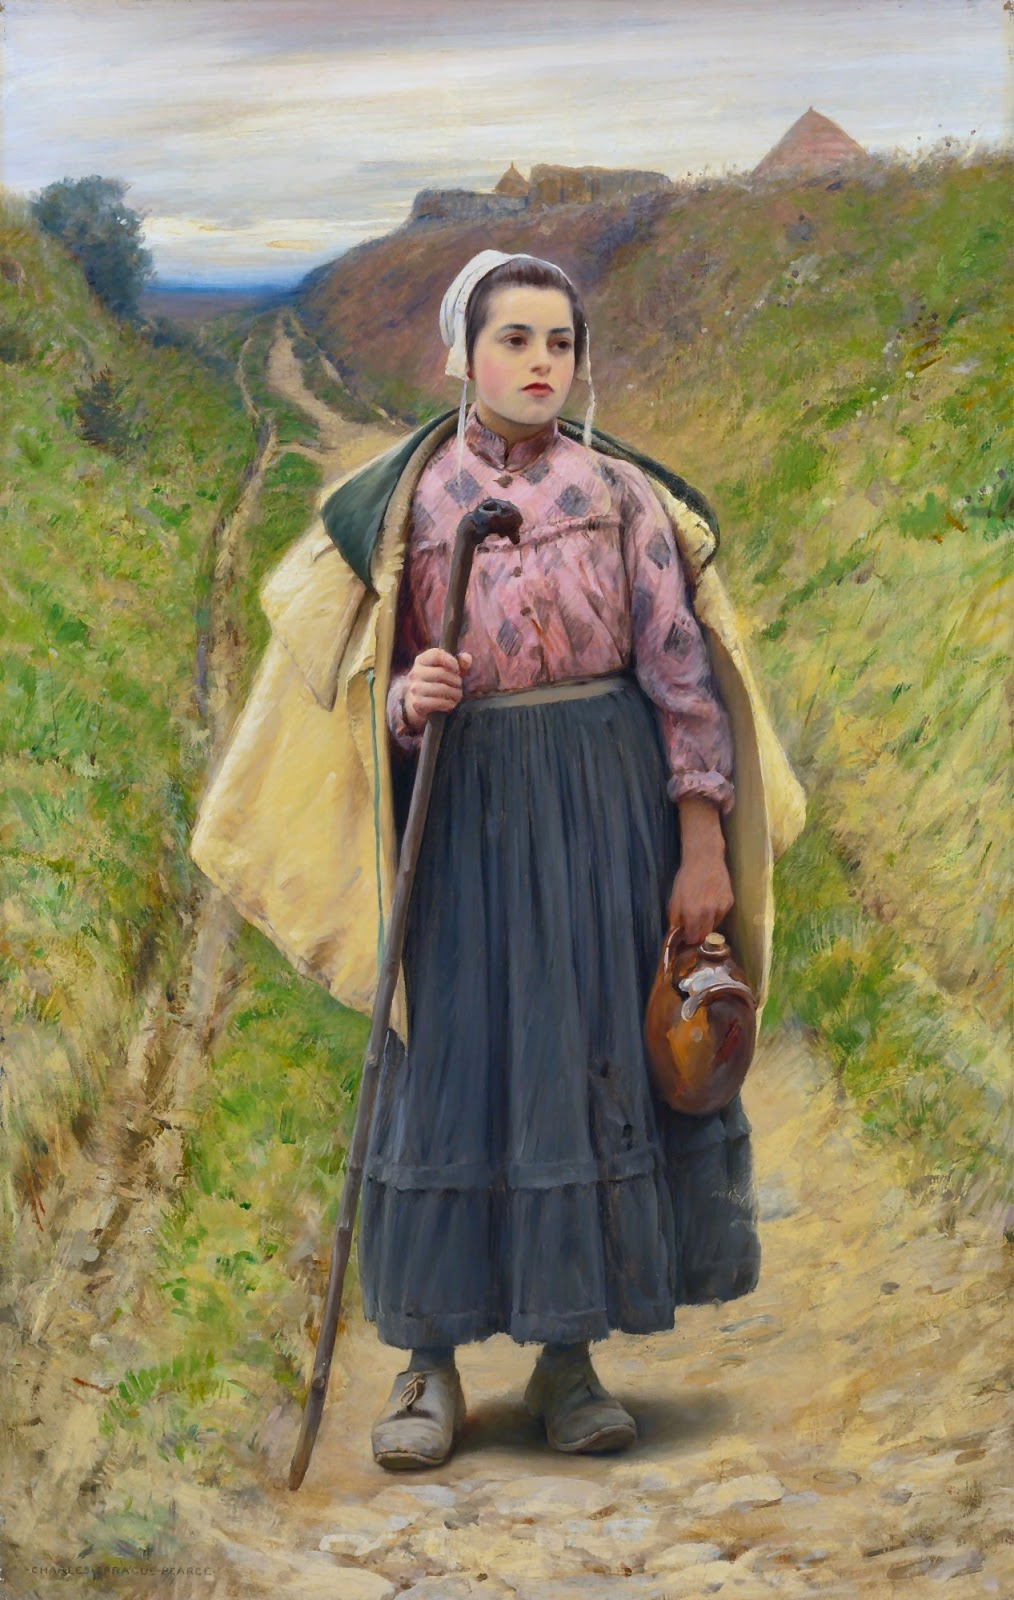 Charles  Sprague  Pearce  on  the  path